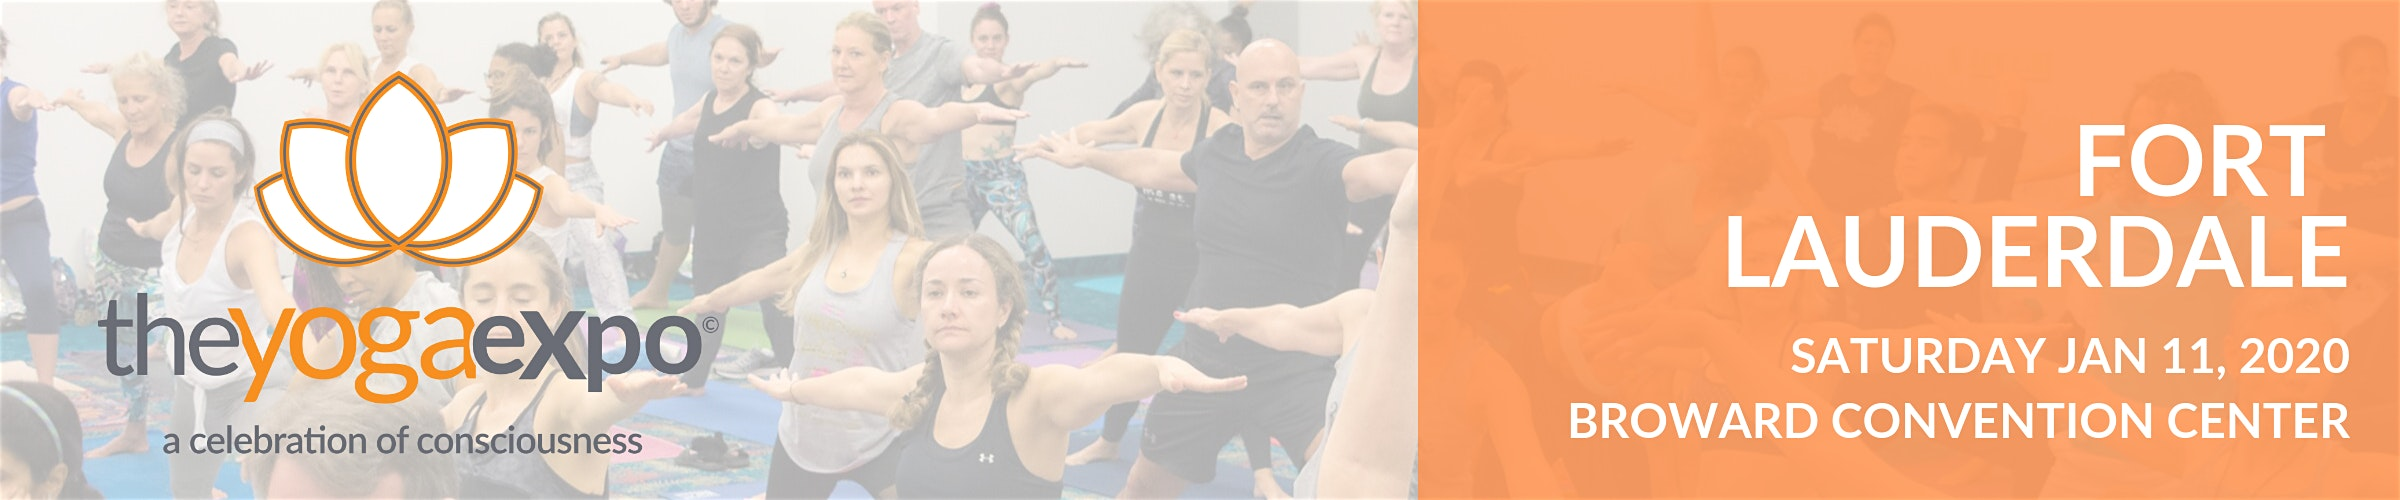 The Yoga Expo Fort Lauderdale: Warrior Flow Expo